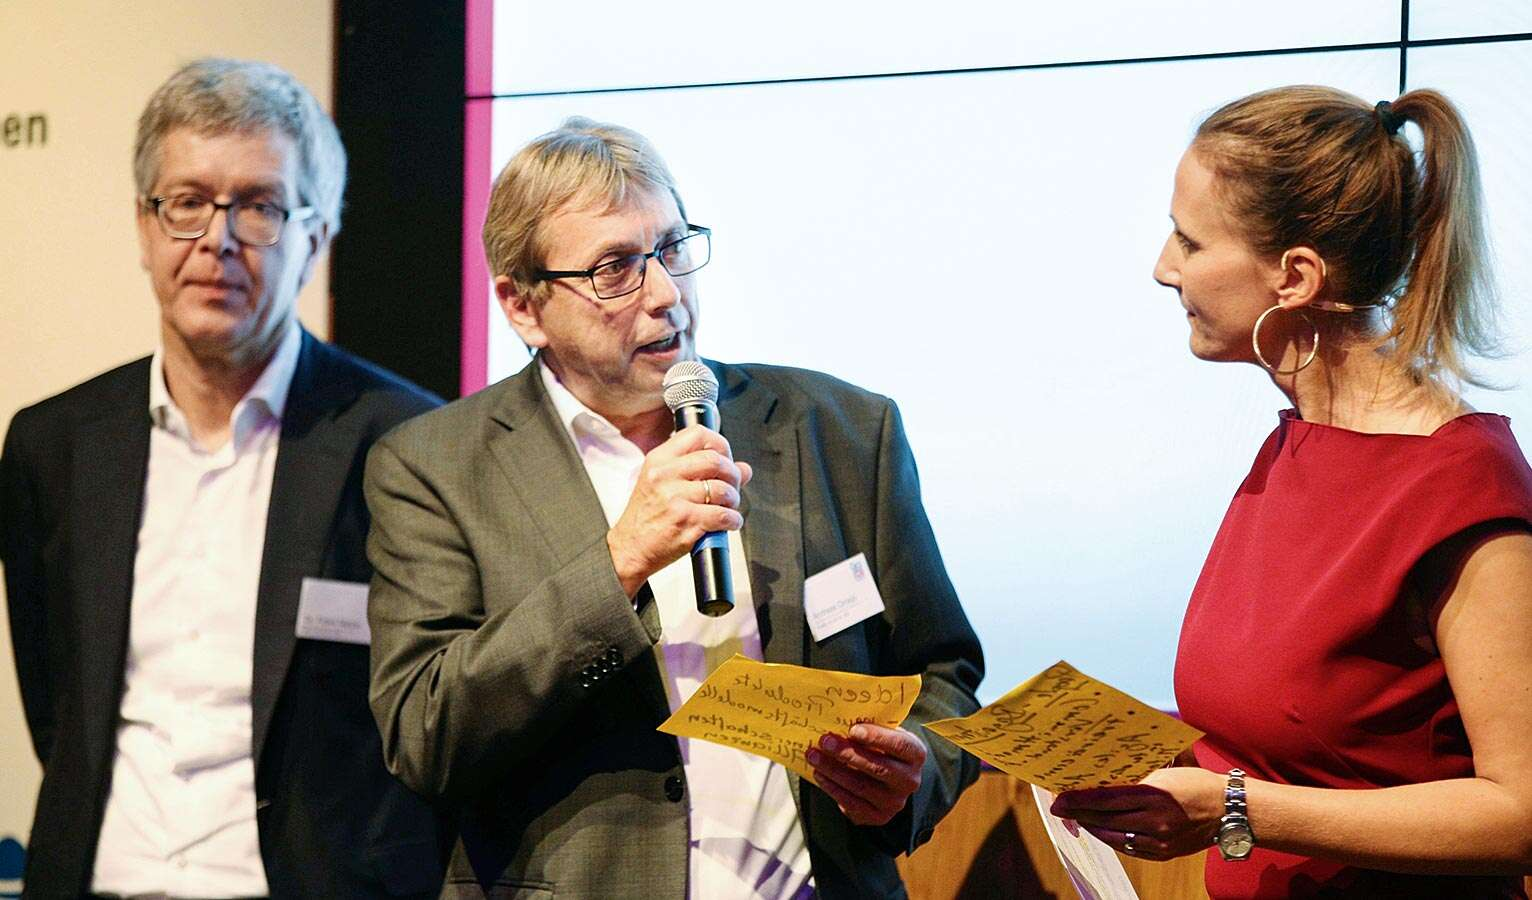 Dr Frank Melzer, director of Product and Technology Management (left), and Andreas Oroszi, head of Digital Business, on stage at the awards ceremony. Image source: Paul Knecht/storytile